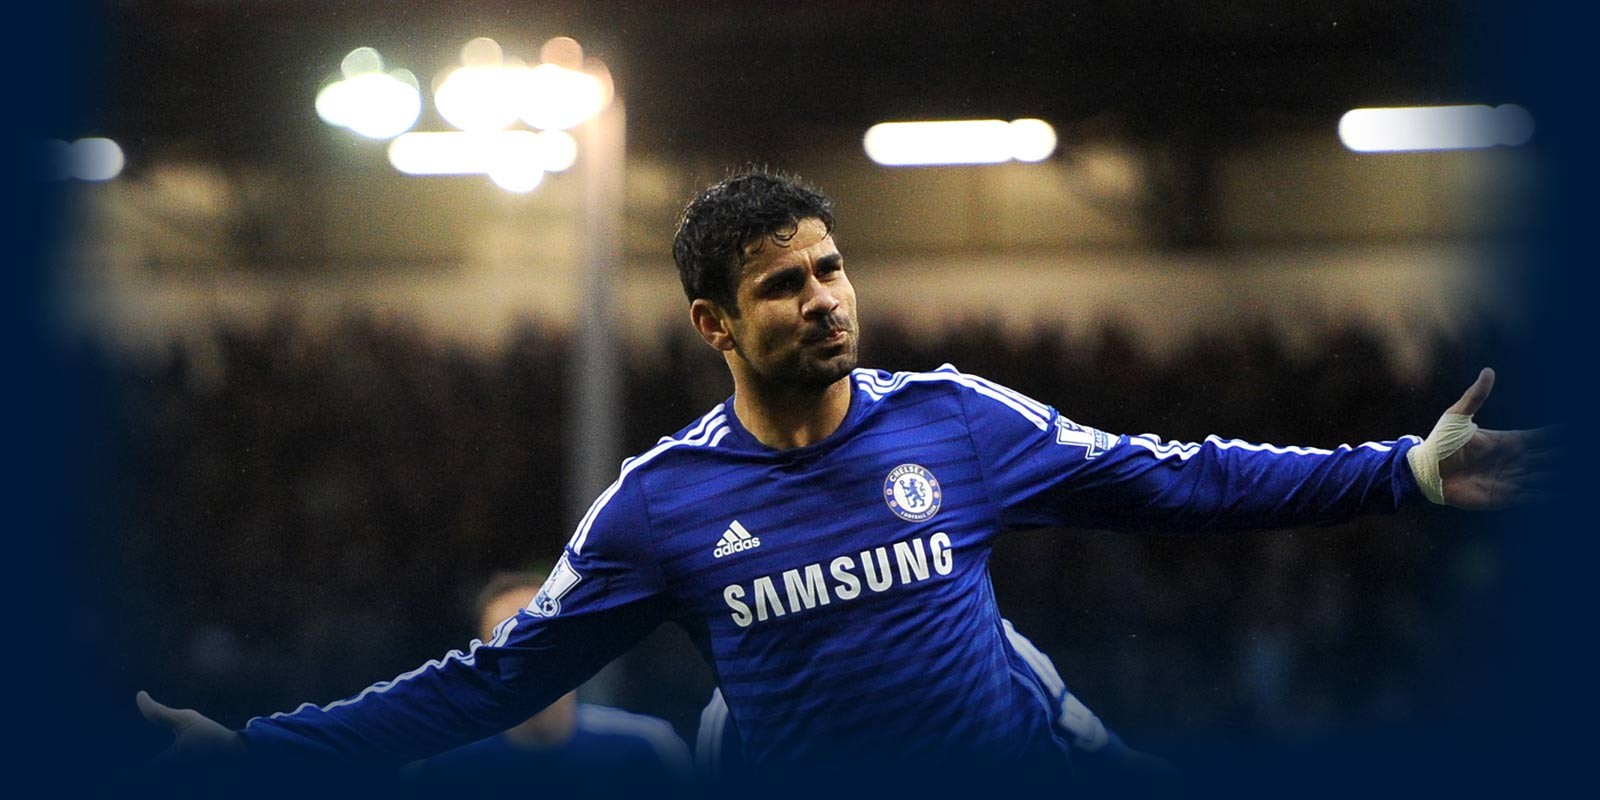 Can Costa grab the first goal of the season?